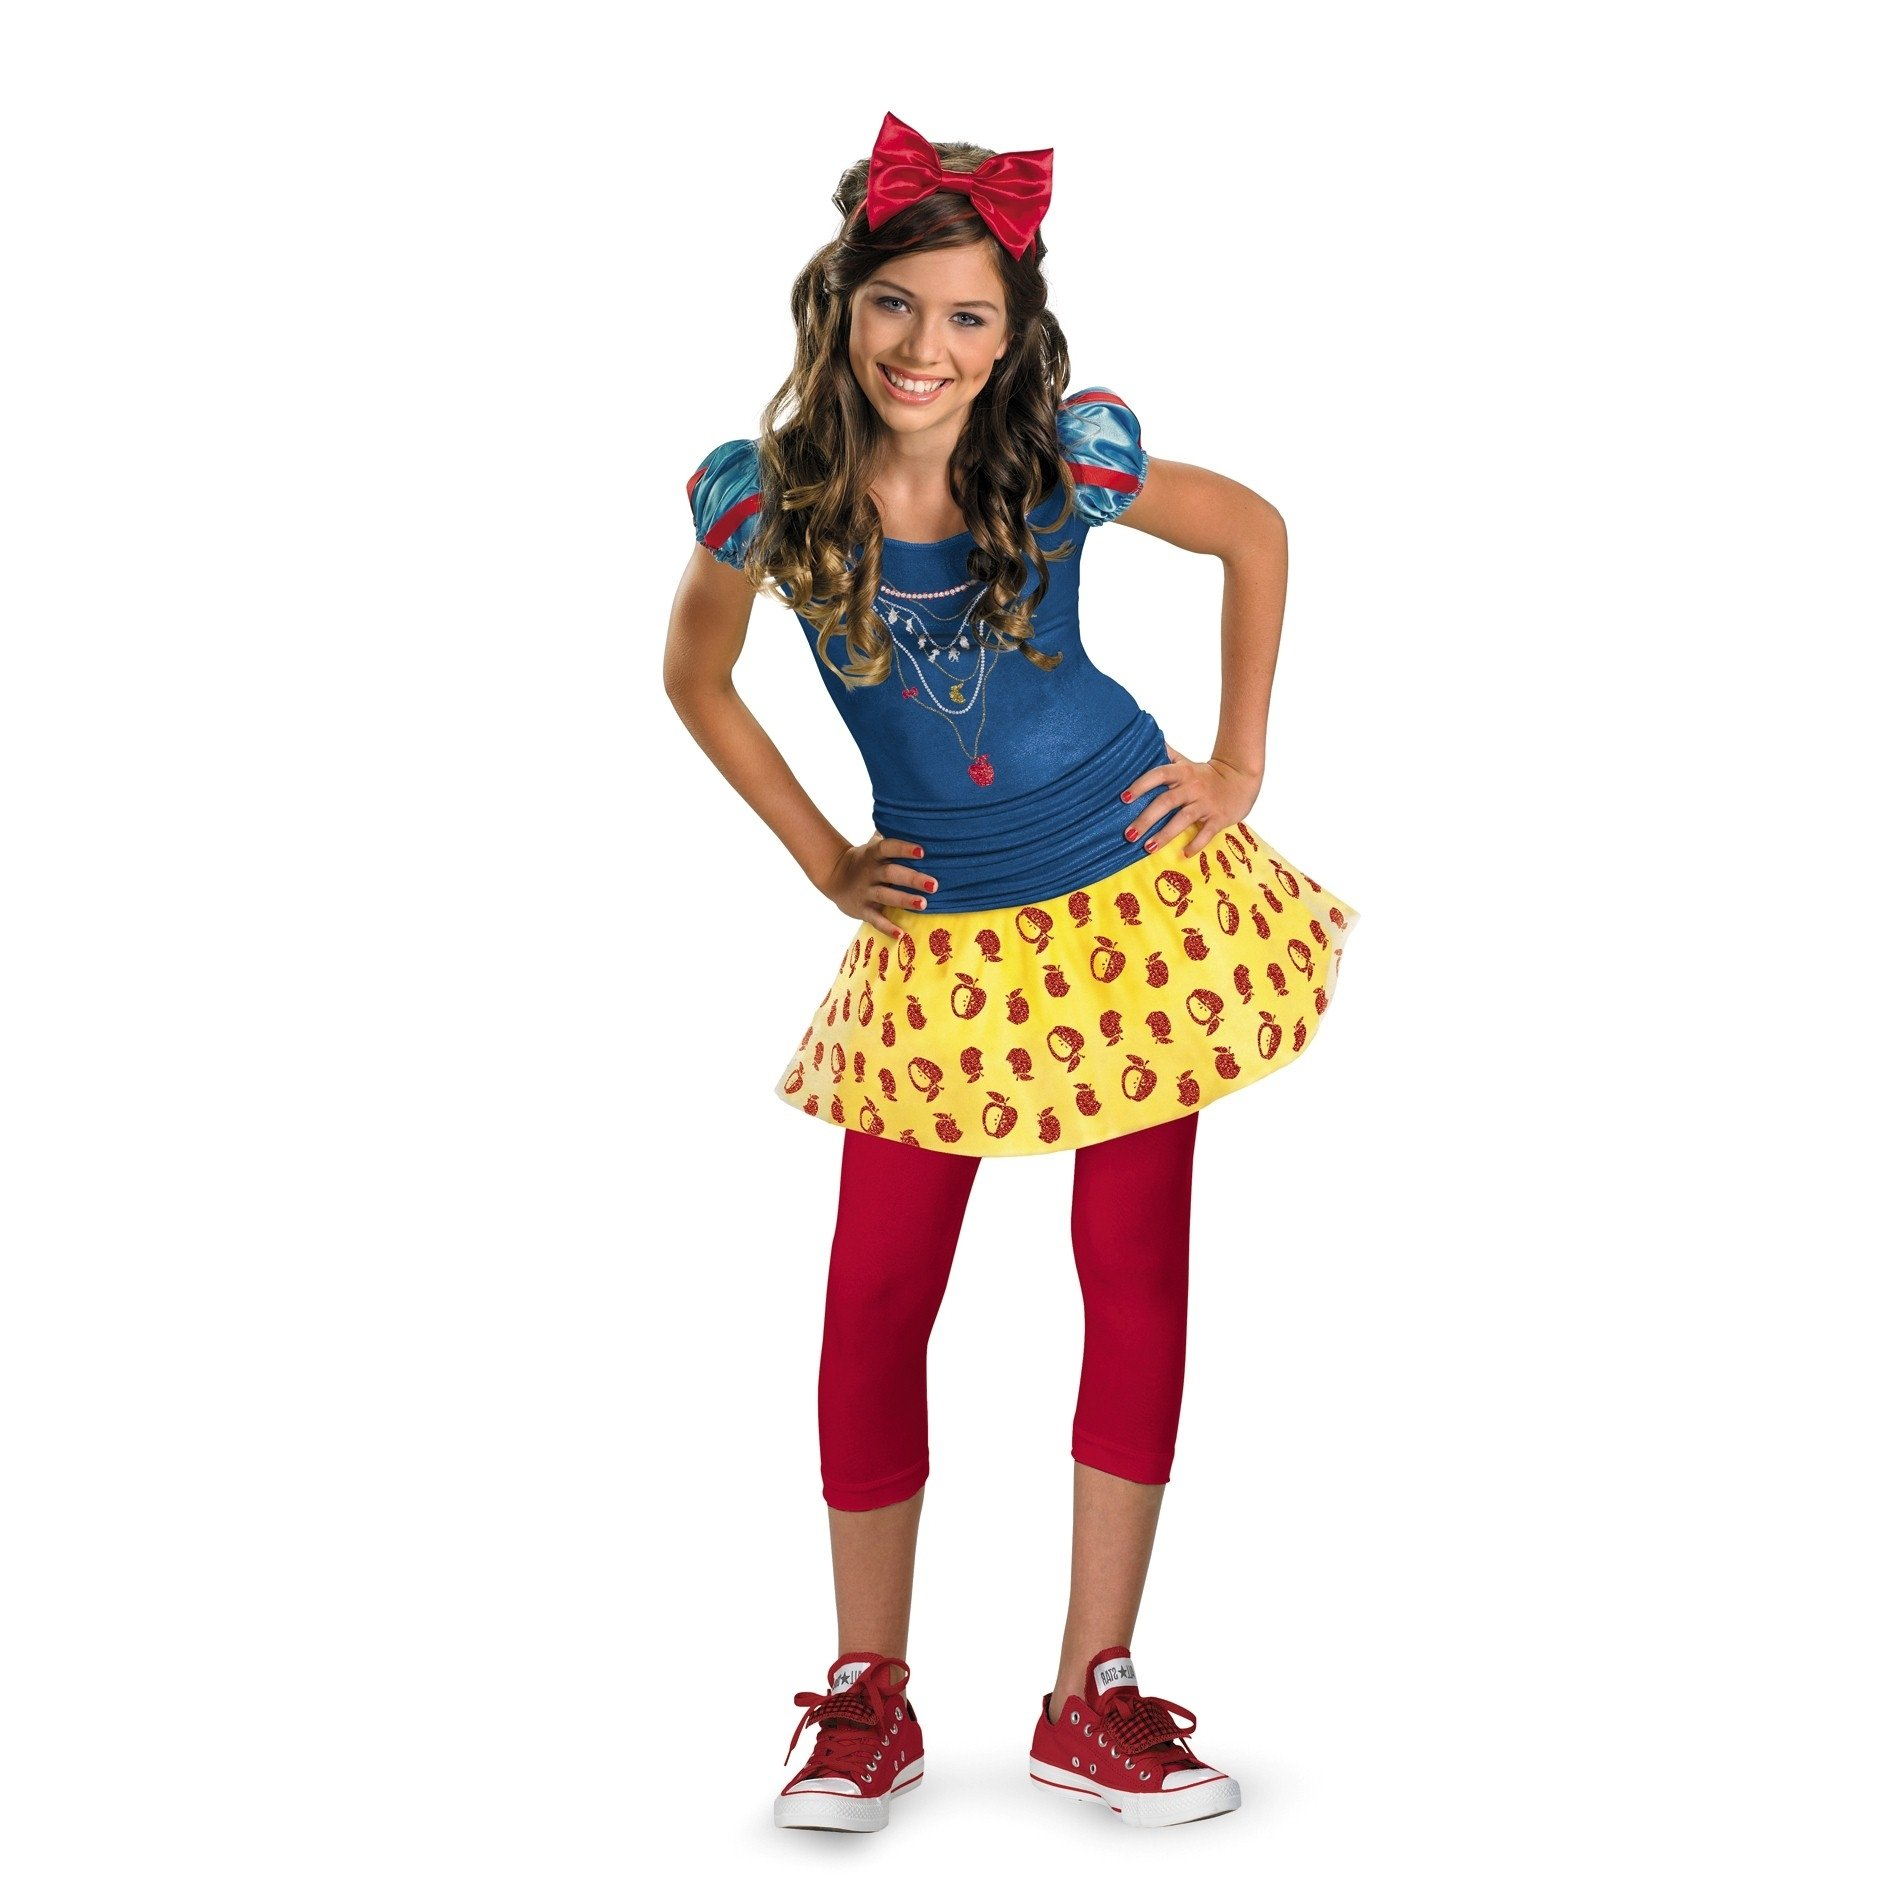 60 halloween costumes for tweens ideas, best 20 halloween costumes